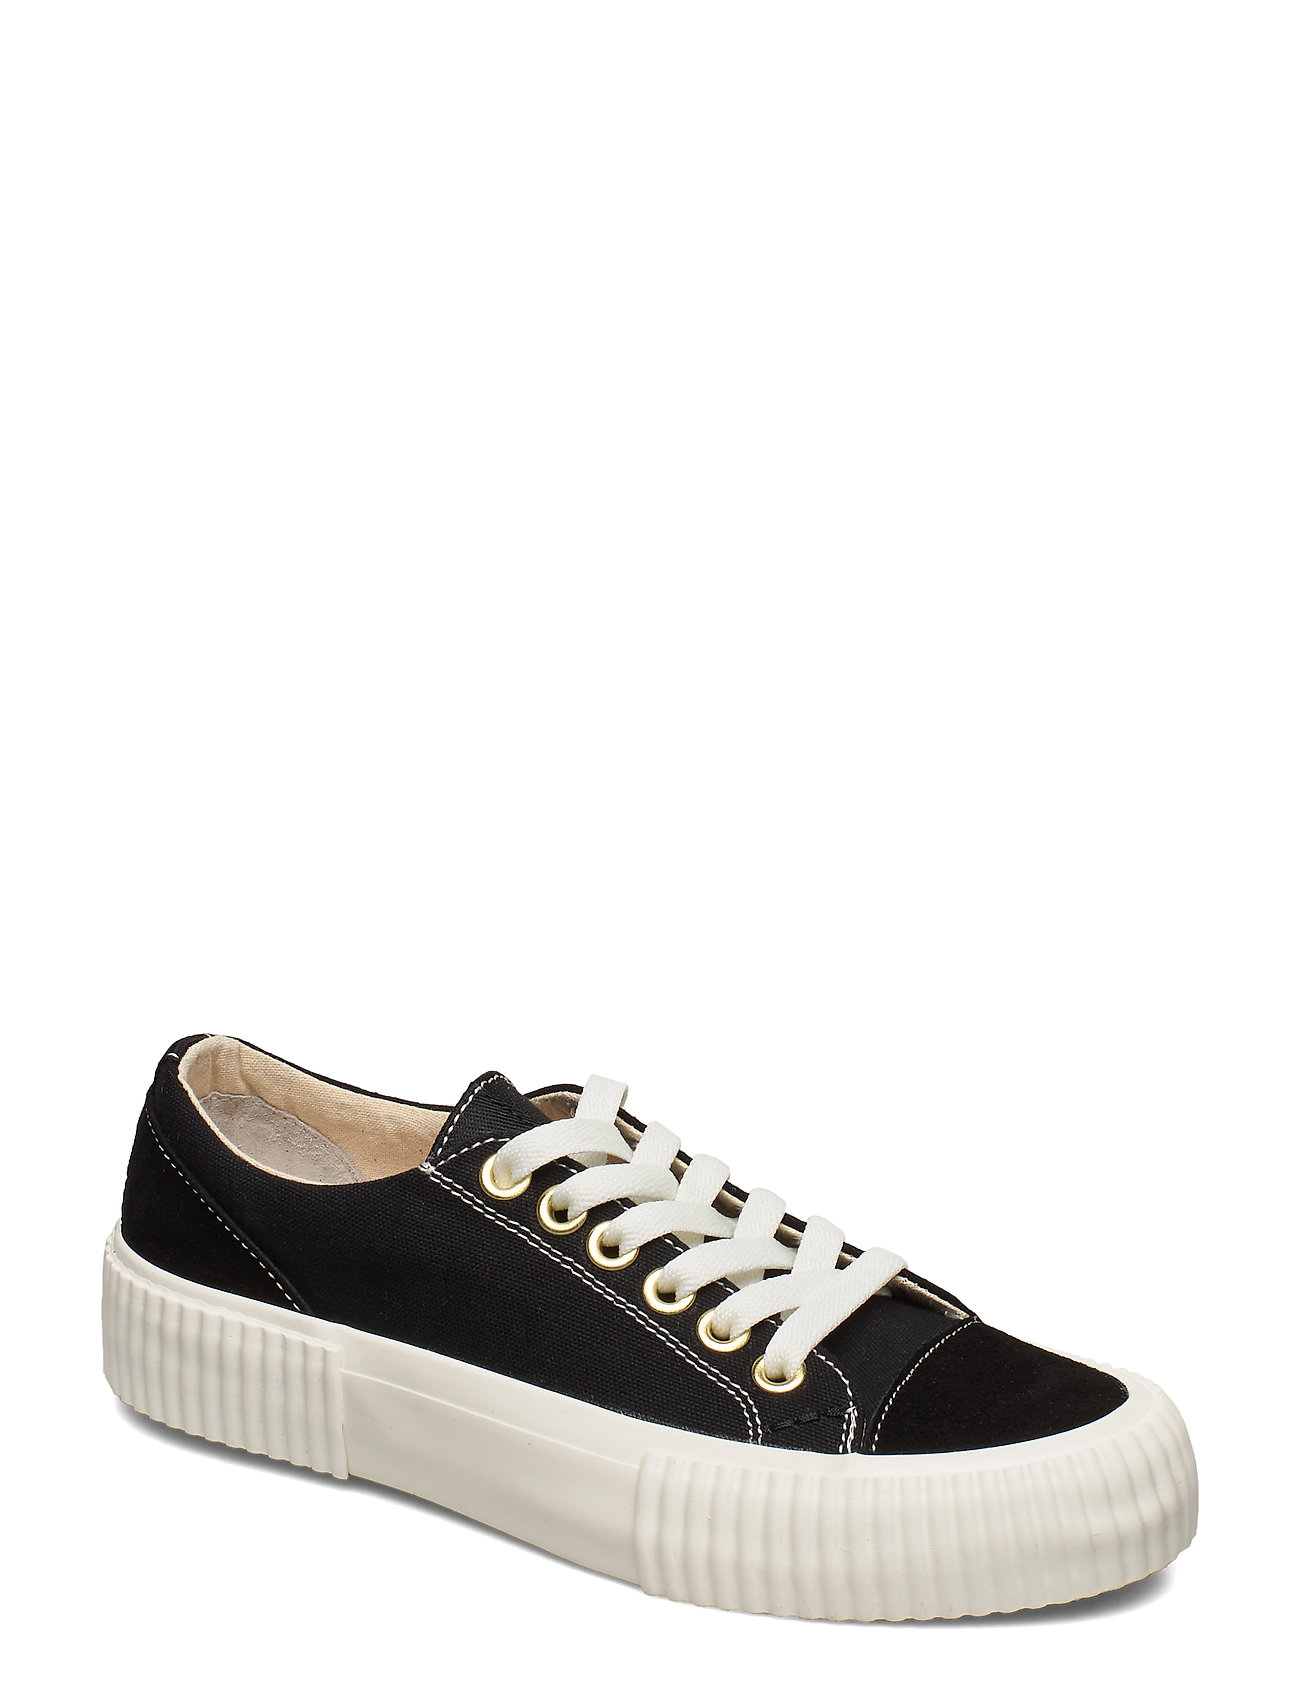 Image of Stb-Andrea T Low-top Sneakers Sort Shoe The Bear (3359209599)